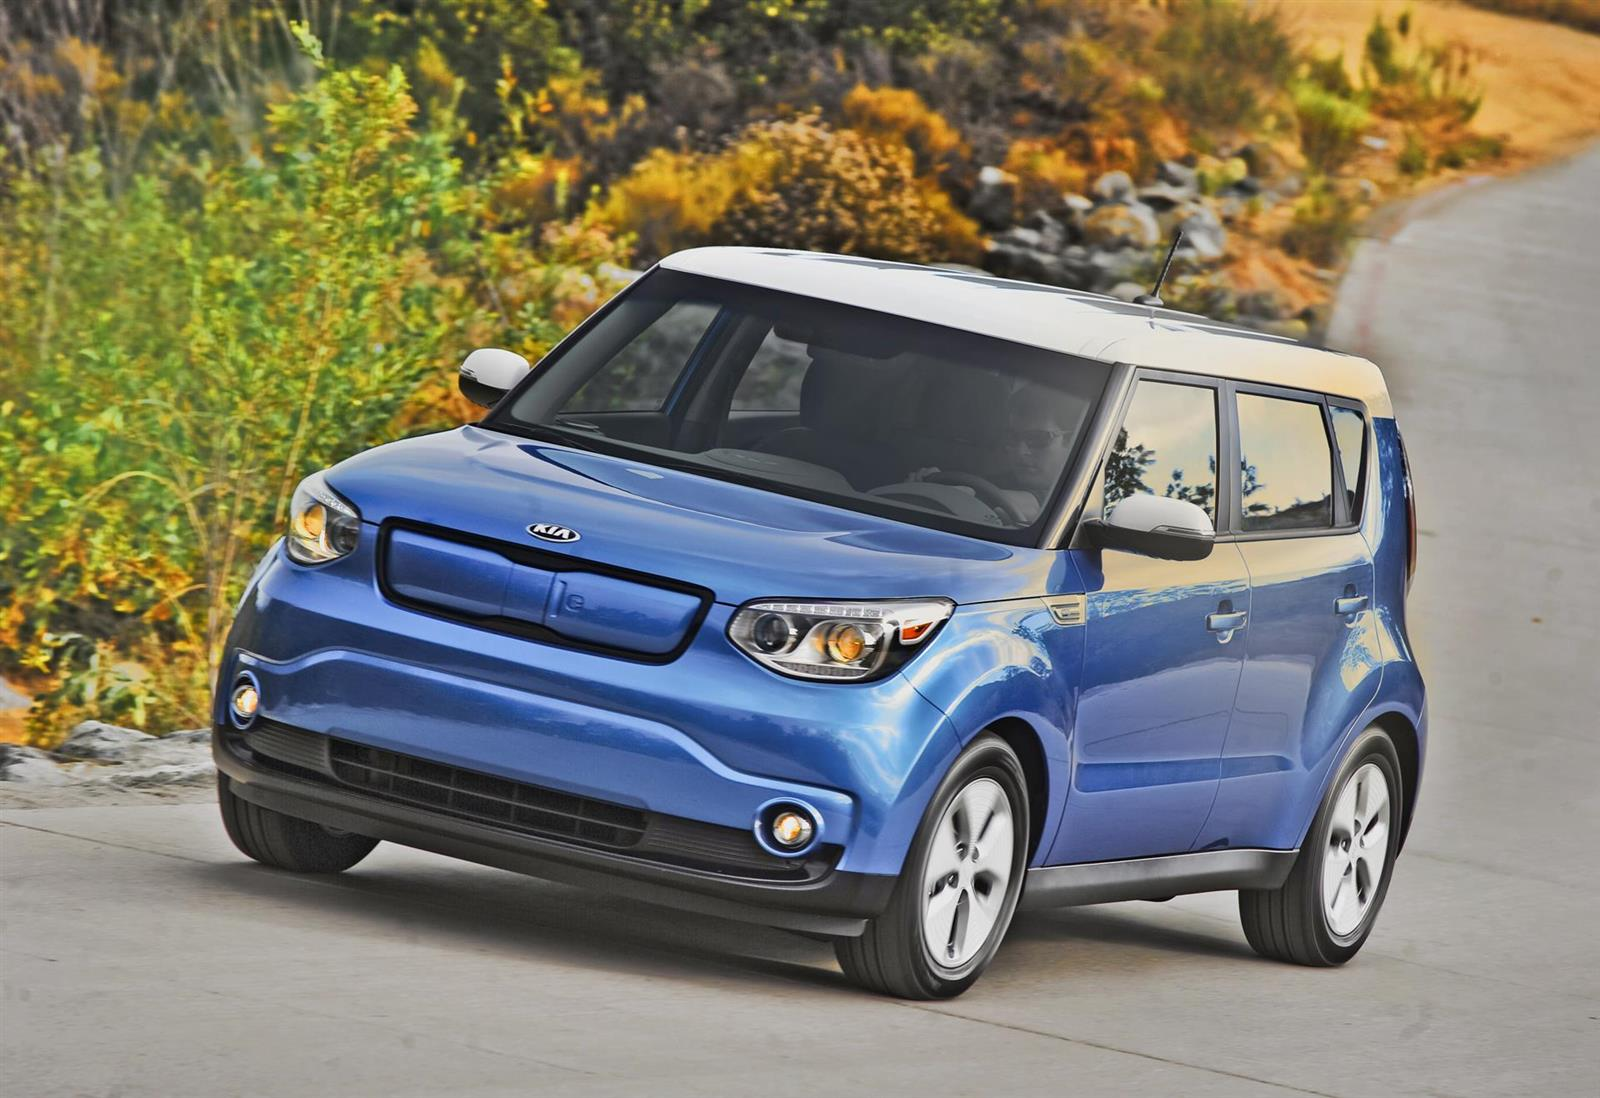 2016 kia soul ev image. Black Bedroom Furniture Sets. Home Design Ideas